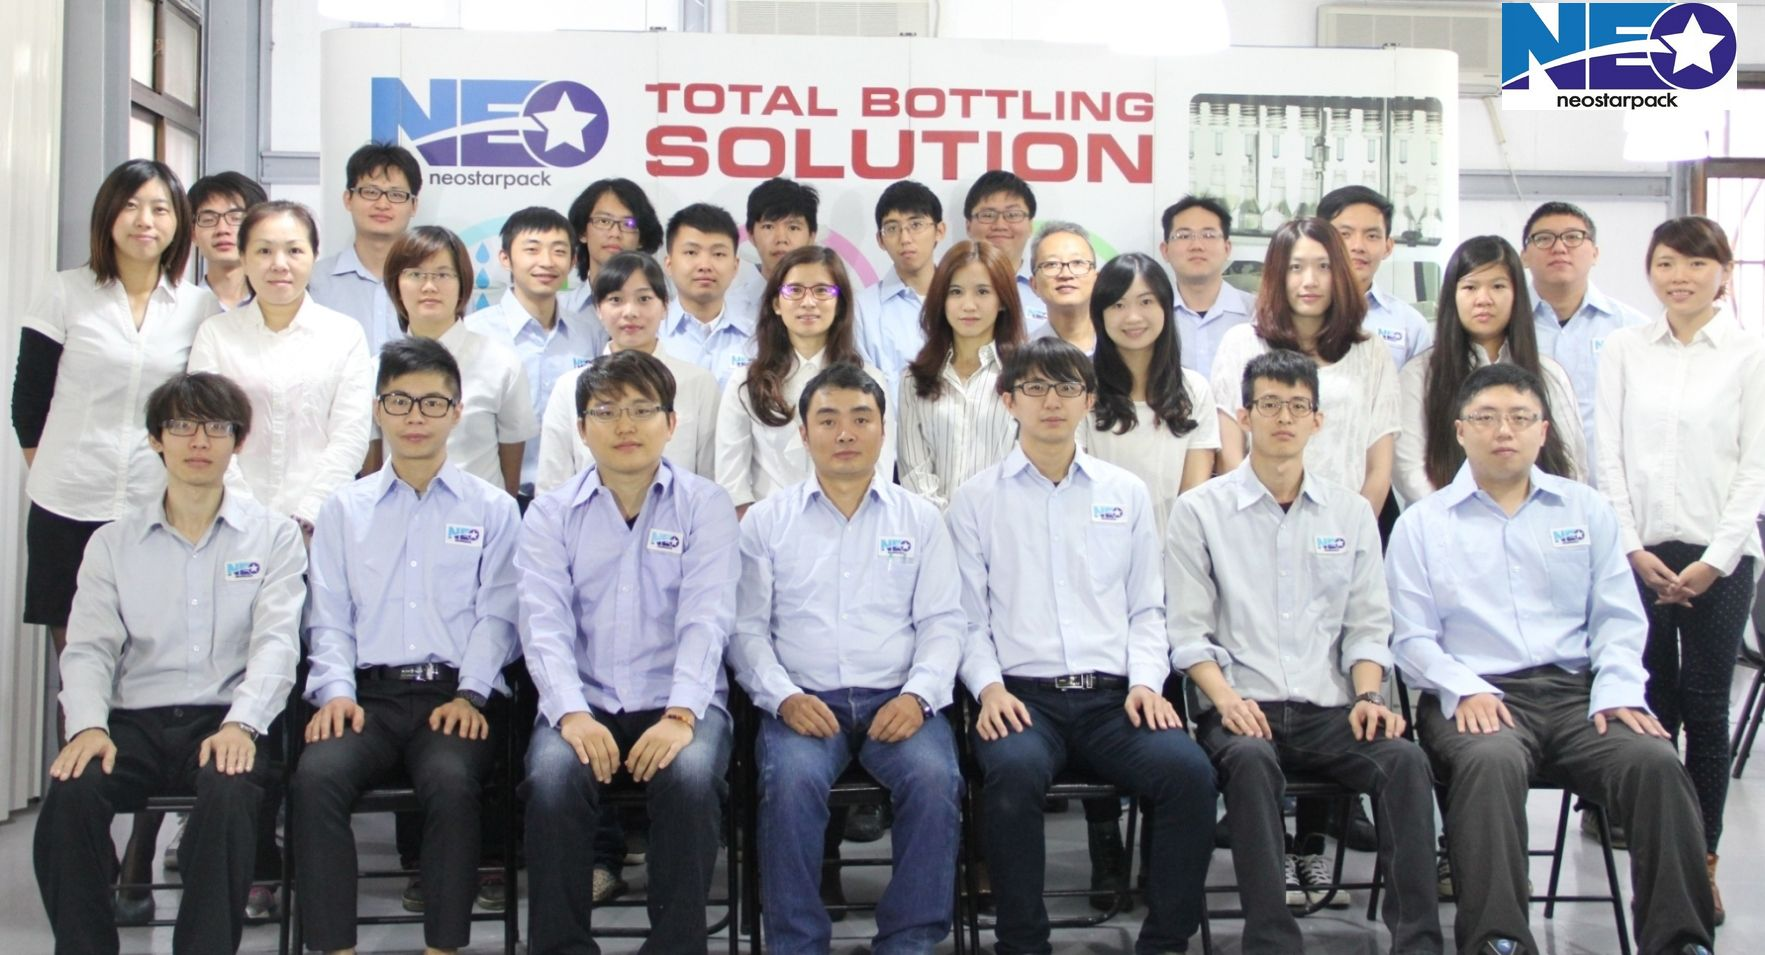 Neostarpack team best 10~100 bpm bottling solutions